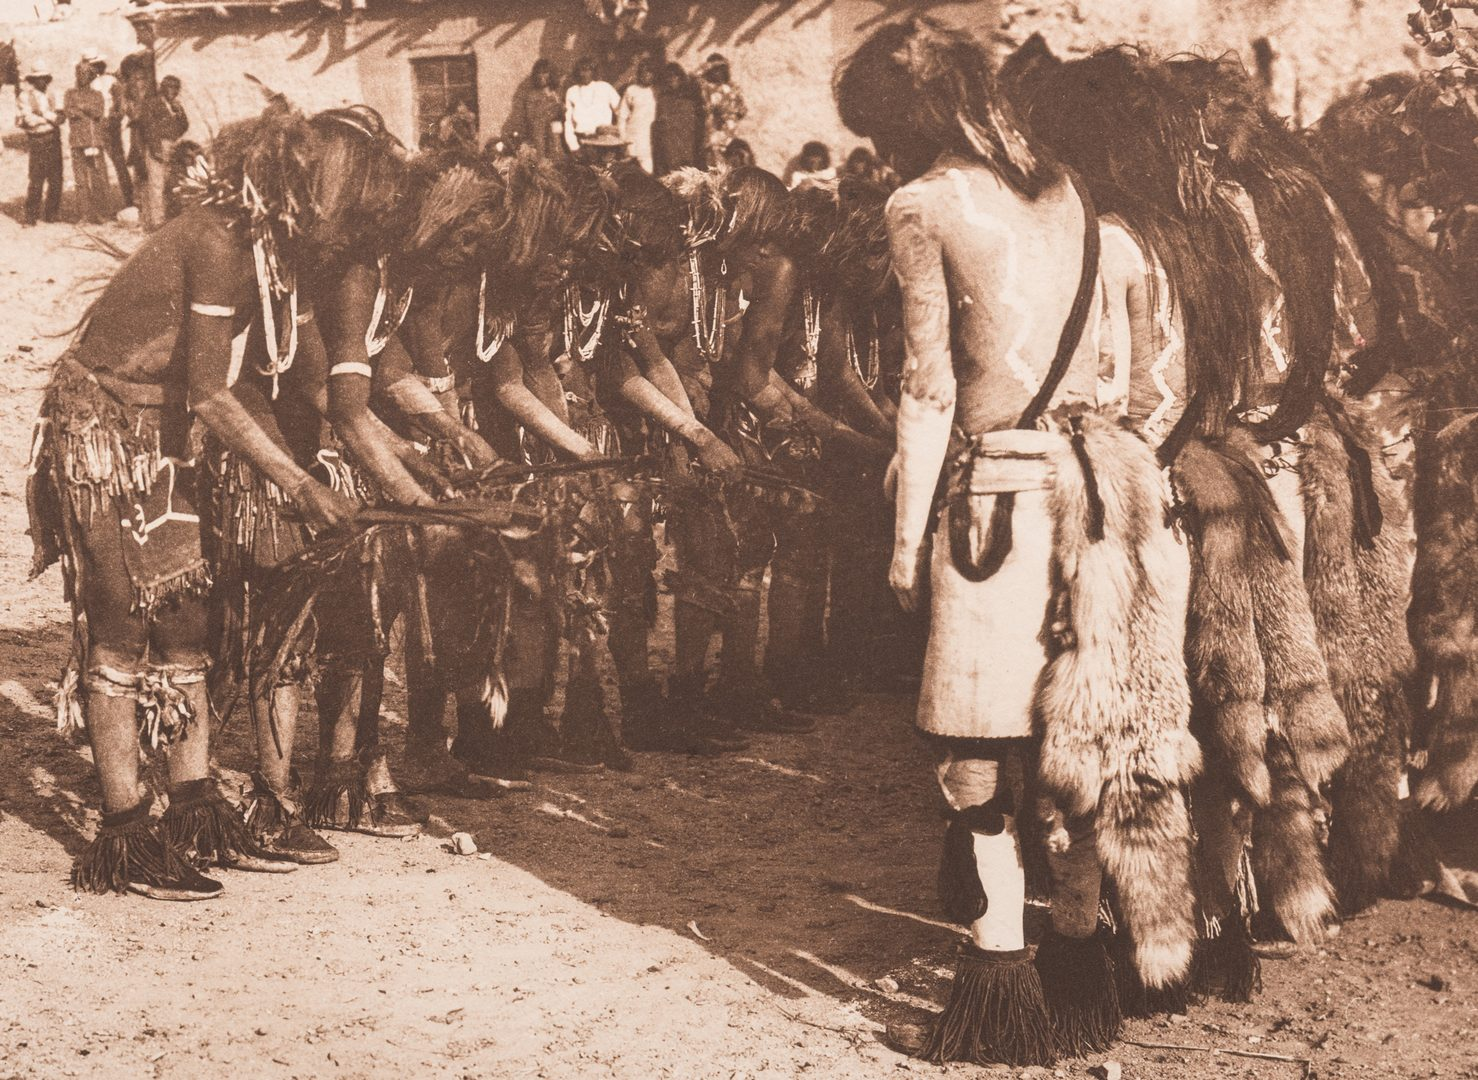 Lot 400: Edward S. Curtis, Antelope and Snakes at Oraibi